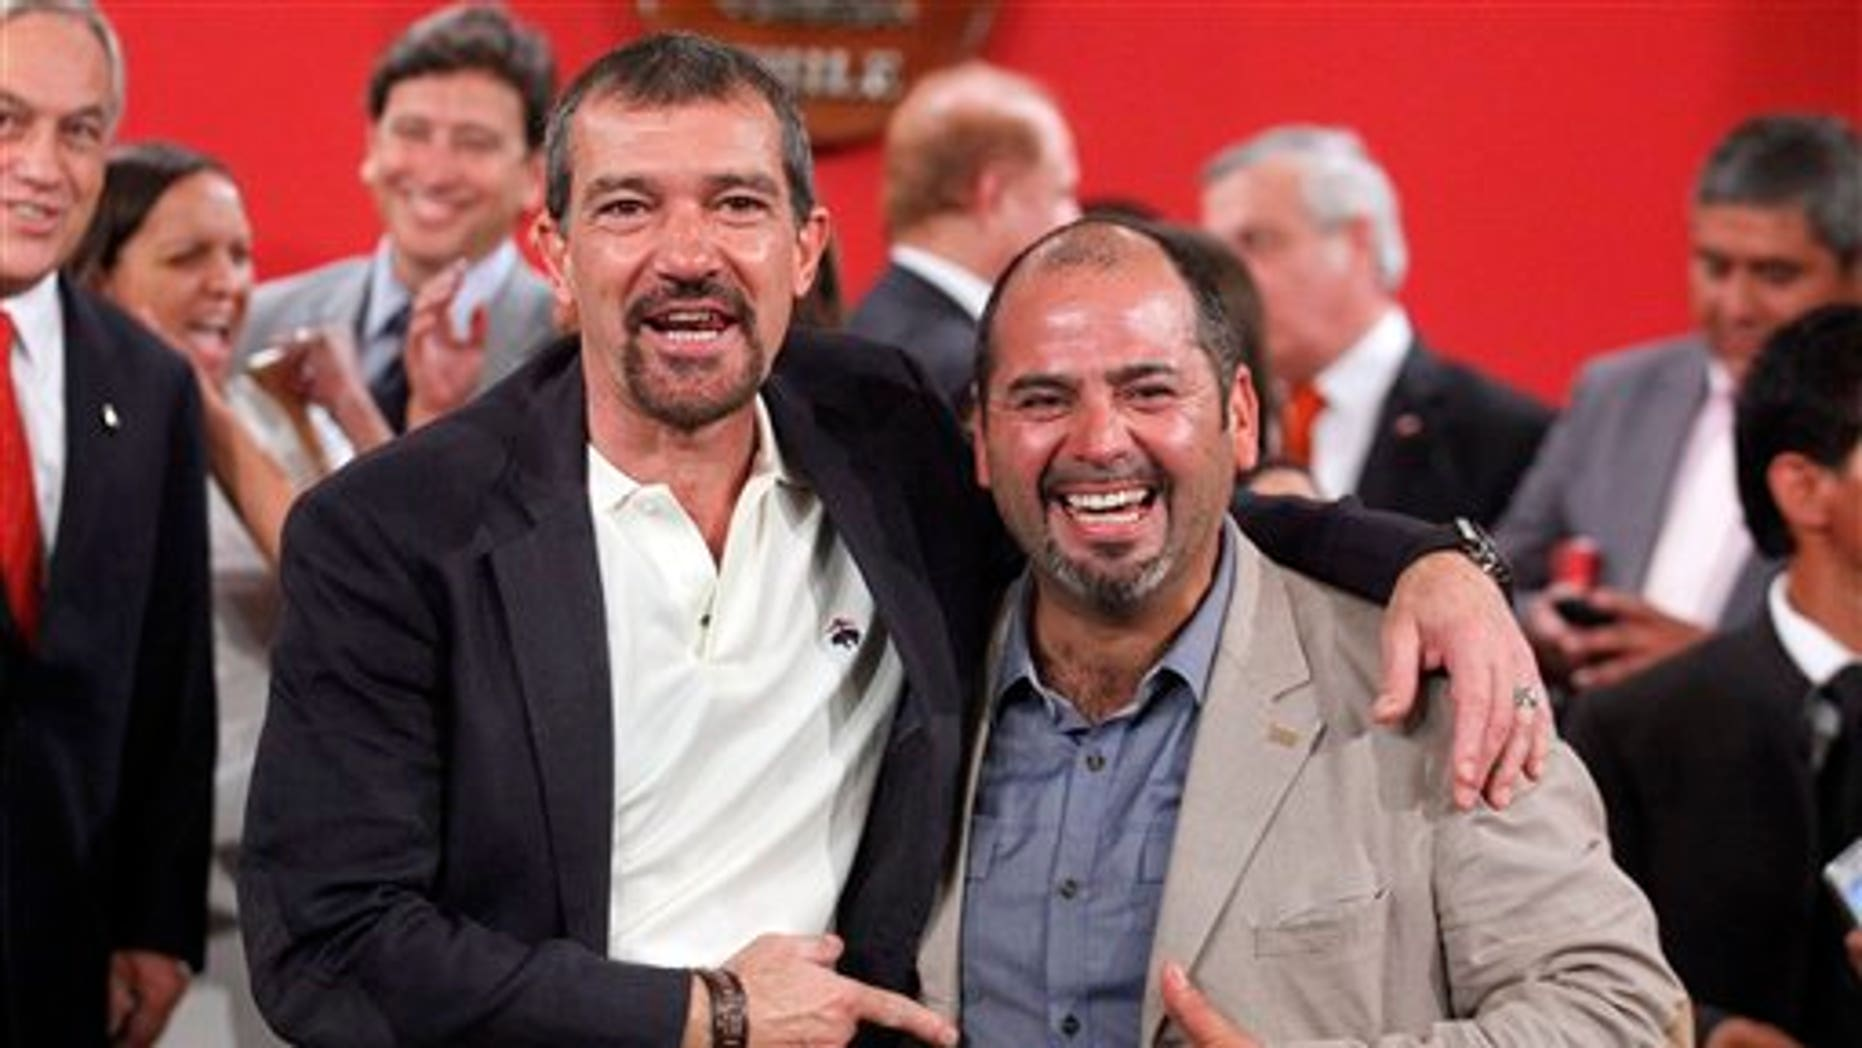 "The Spanish actor, Antonio Banderas, left, poses for photographers next to Mario Sepulveda, in Santiago, Chile, Friday Jan. 31, 2014. Sepulveda was one of the 33 miners who was trapped in a mine cave-in in Chile's Atacama desert in 2010. The Spanish star will play Sepulveda, who known as ""Super Mario,"" became the public face of the miners. (AP Photo/Luis Hidalgo)"